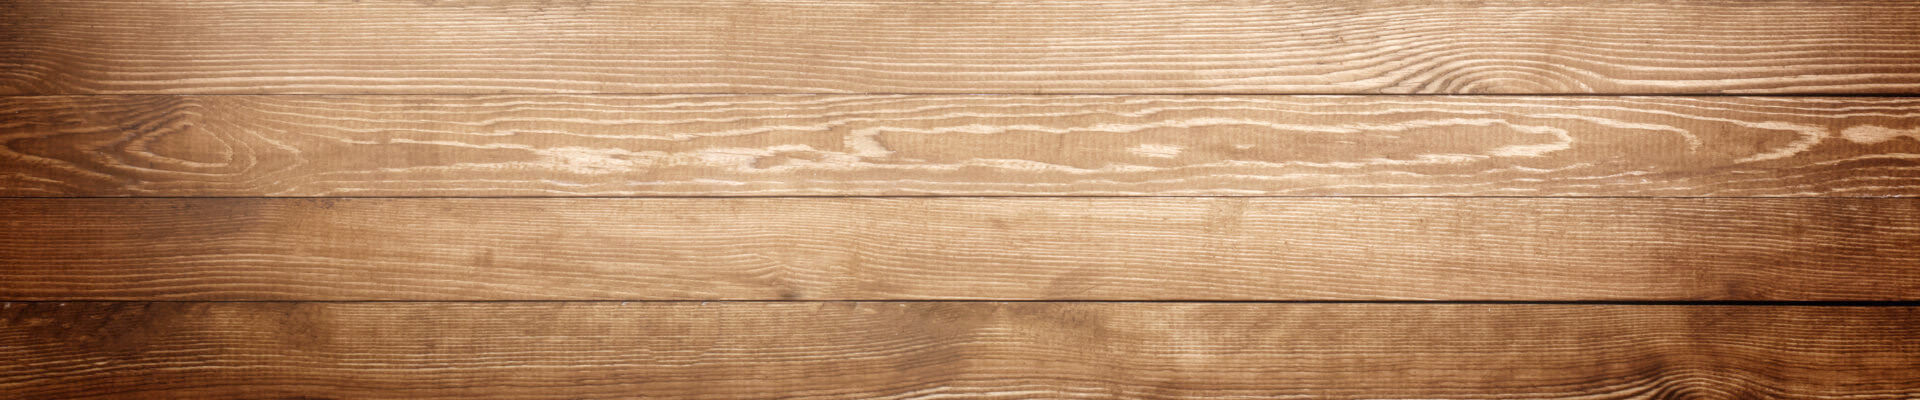 Book Covers Background - Wood (Bright)